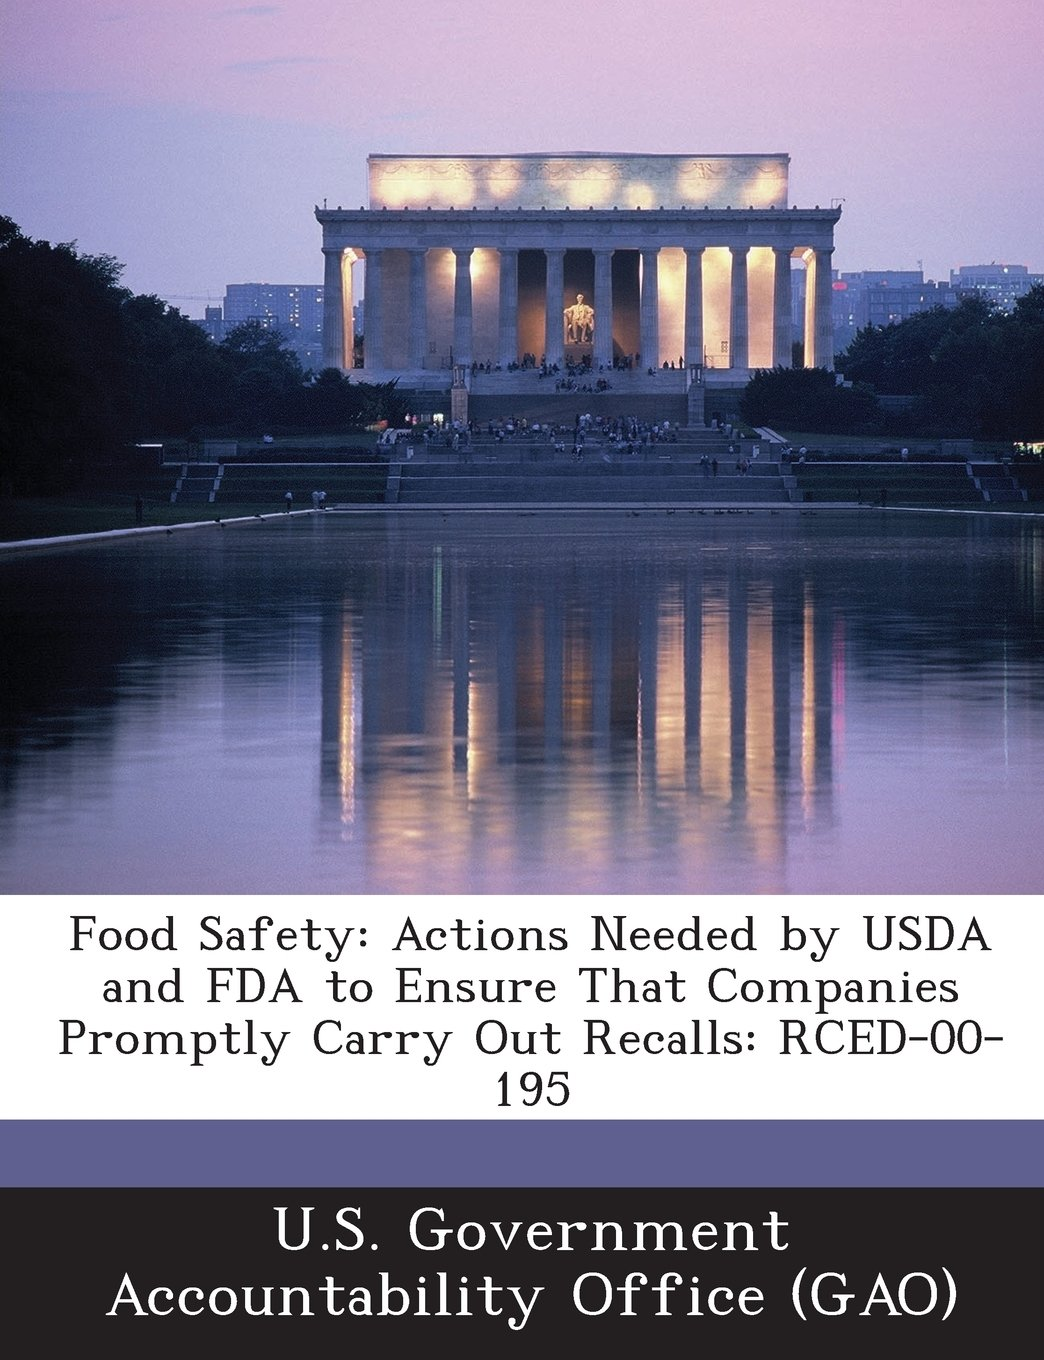 Food Safety: Actions Needed by USDA and FDA to Ensure That Companies Promptly Carry Out Recalls: RCED-00-195 pdf